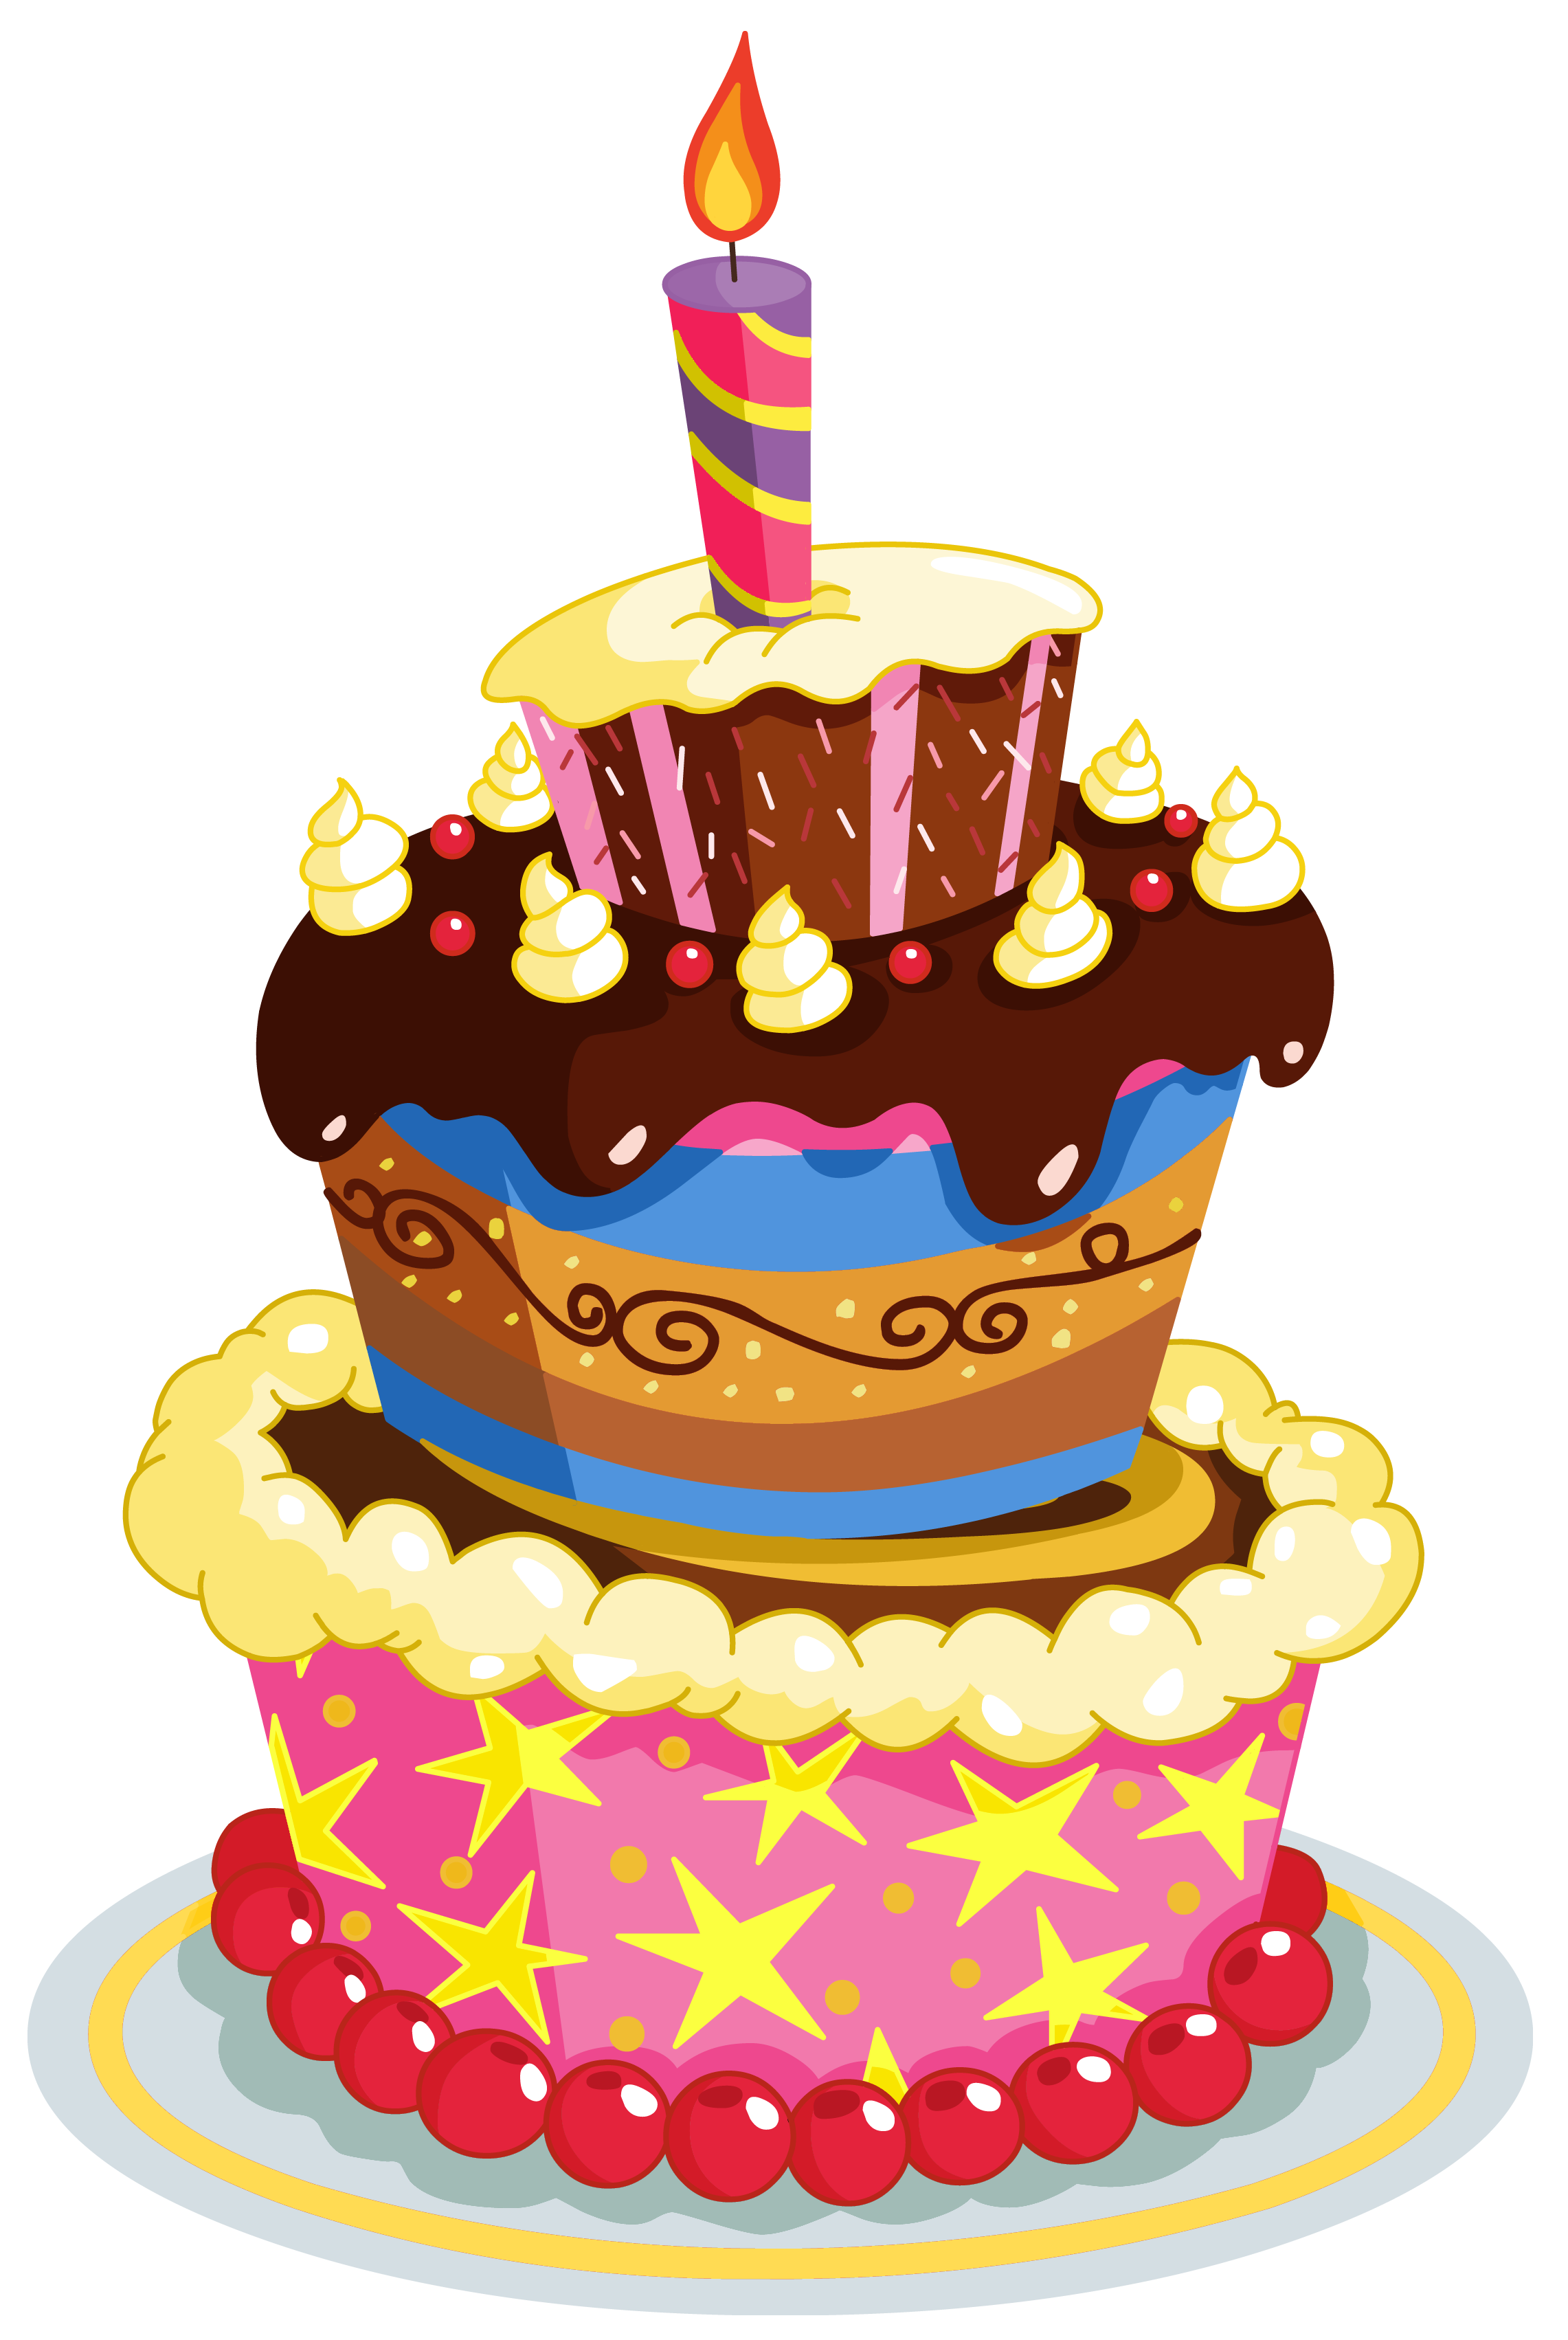 Heart cake clipart image freeuse Colorful Birthday Cake PNG Clipart | Clip art | Pinterest | Colorful ... image freeuse